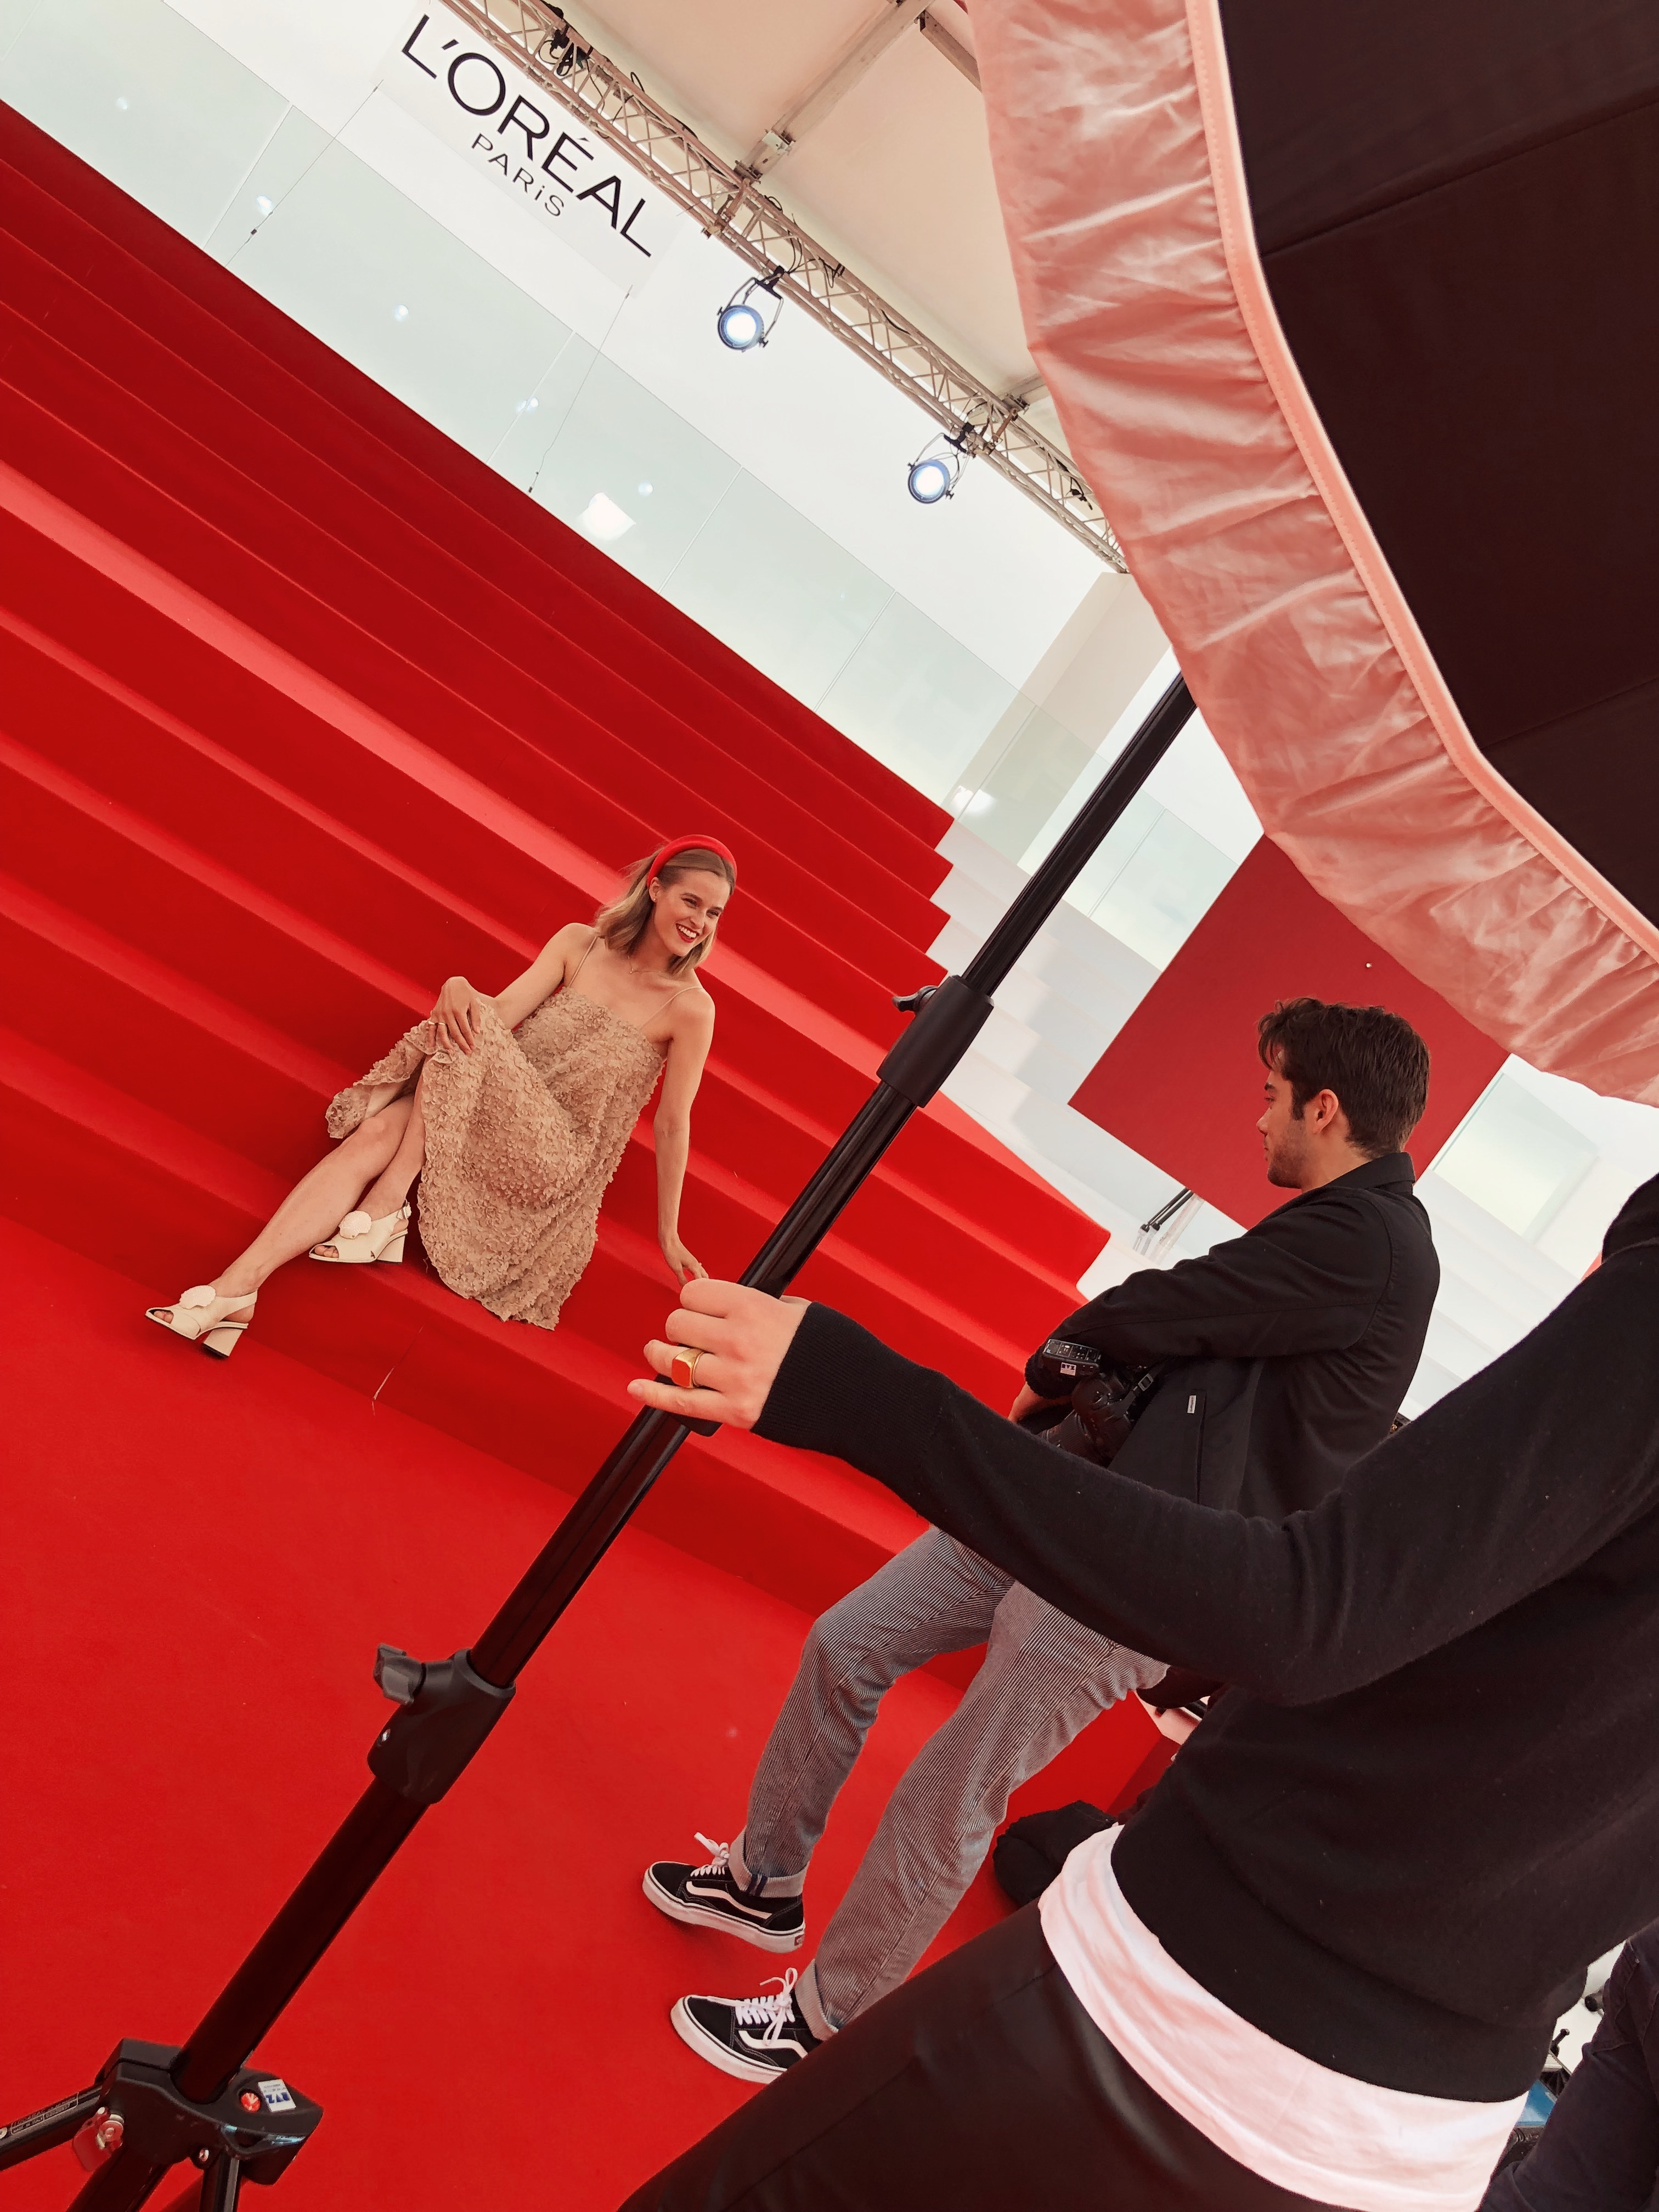 Cathrine Widunok Wichmand,, Cannes Film Festival, L'oréal